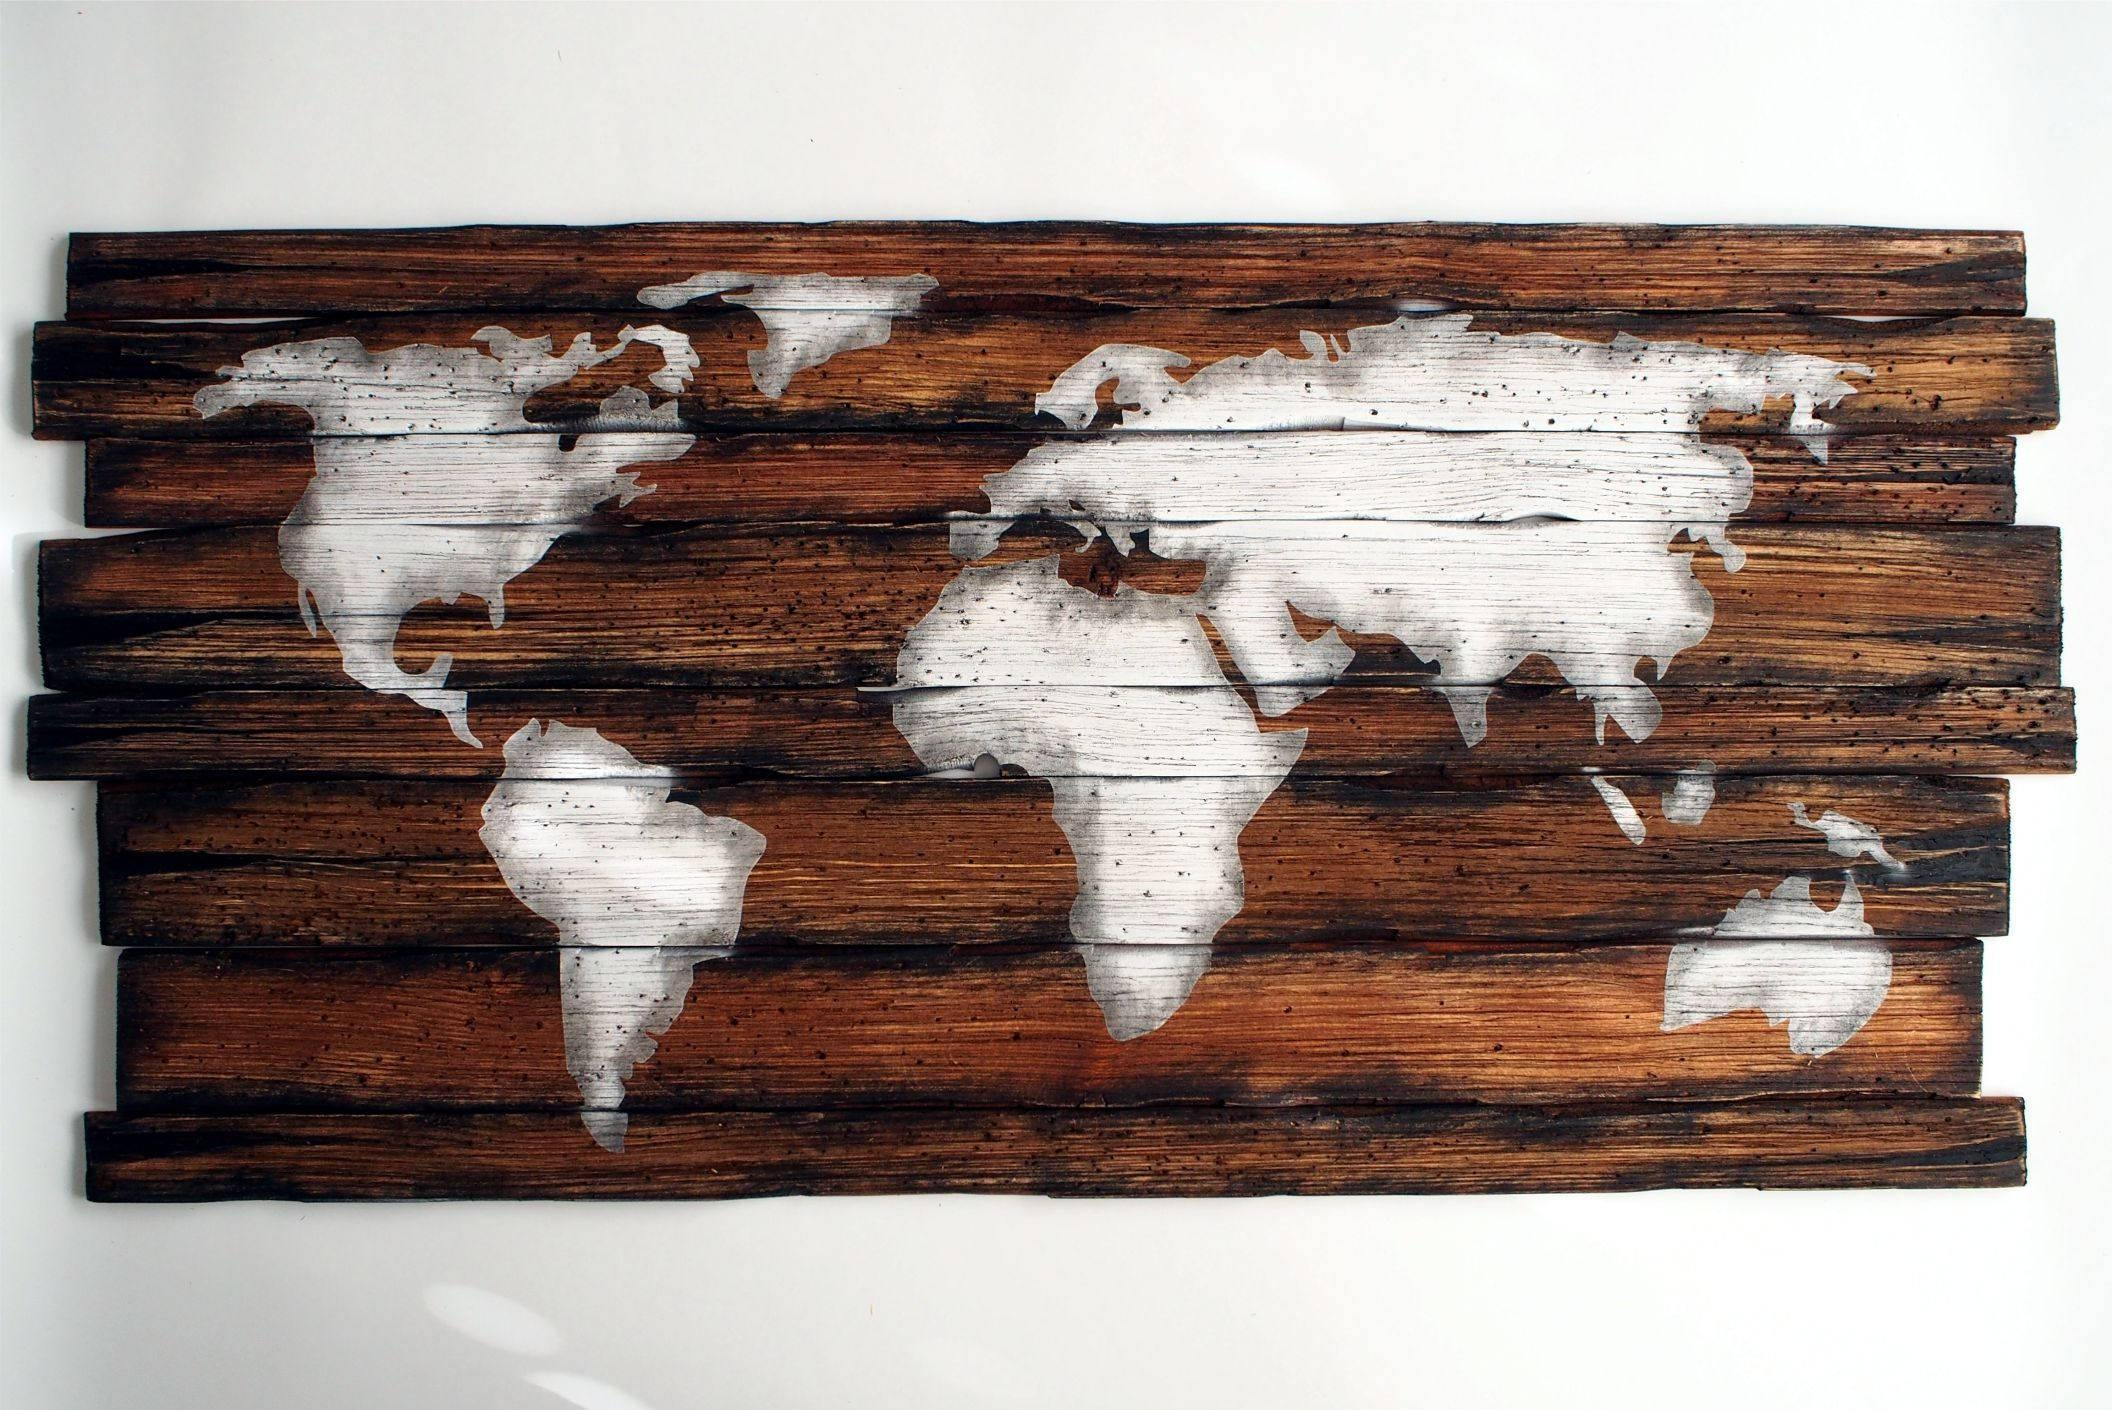 World Map | Rustic Decor | Handmade Worn Out Wood Sign | Wall Art For Most Recent Wood Map Wall Art (View 19 of 20)